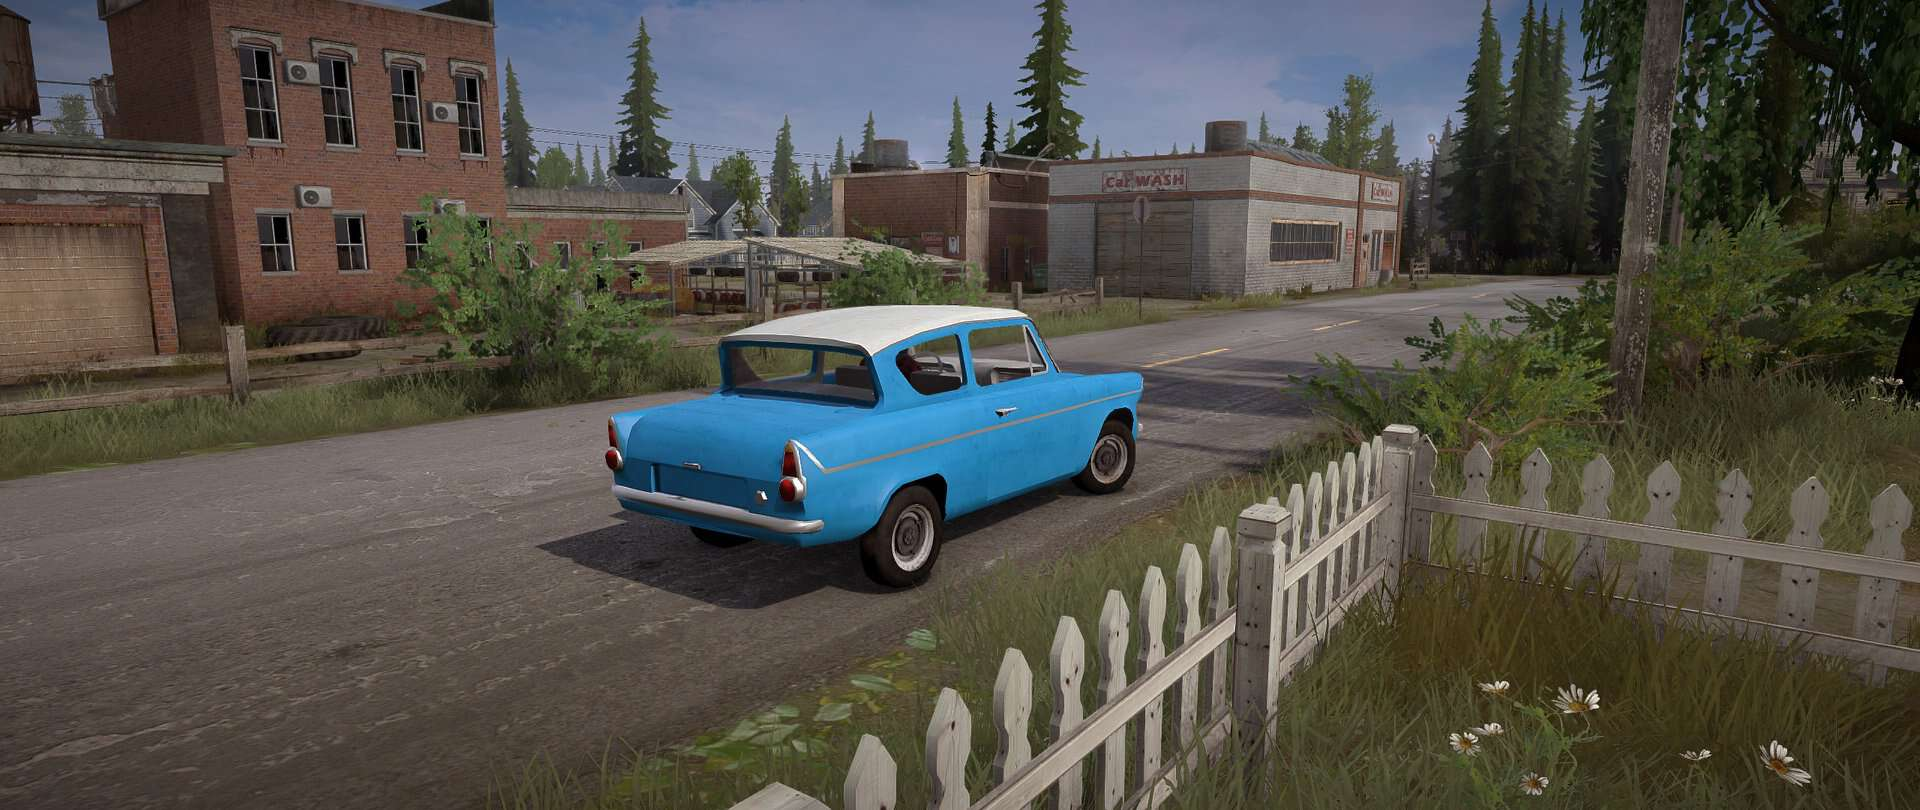 Spintires:Mudrunner - Ford Anglia 1959 Car Mod